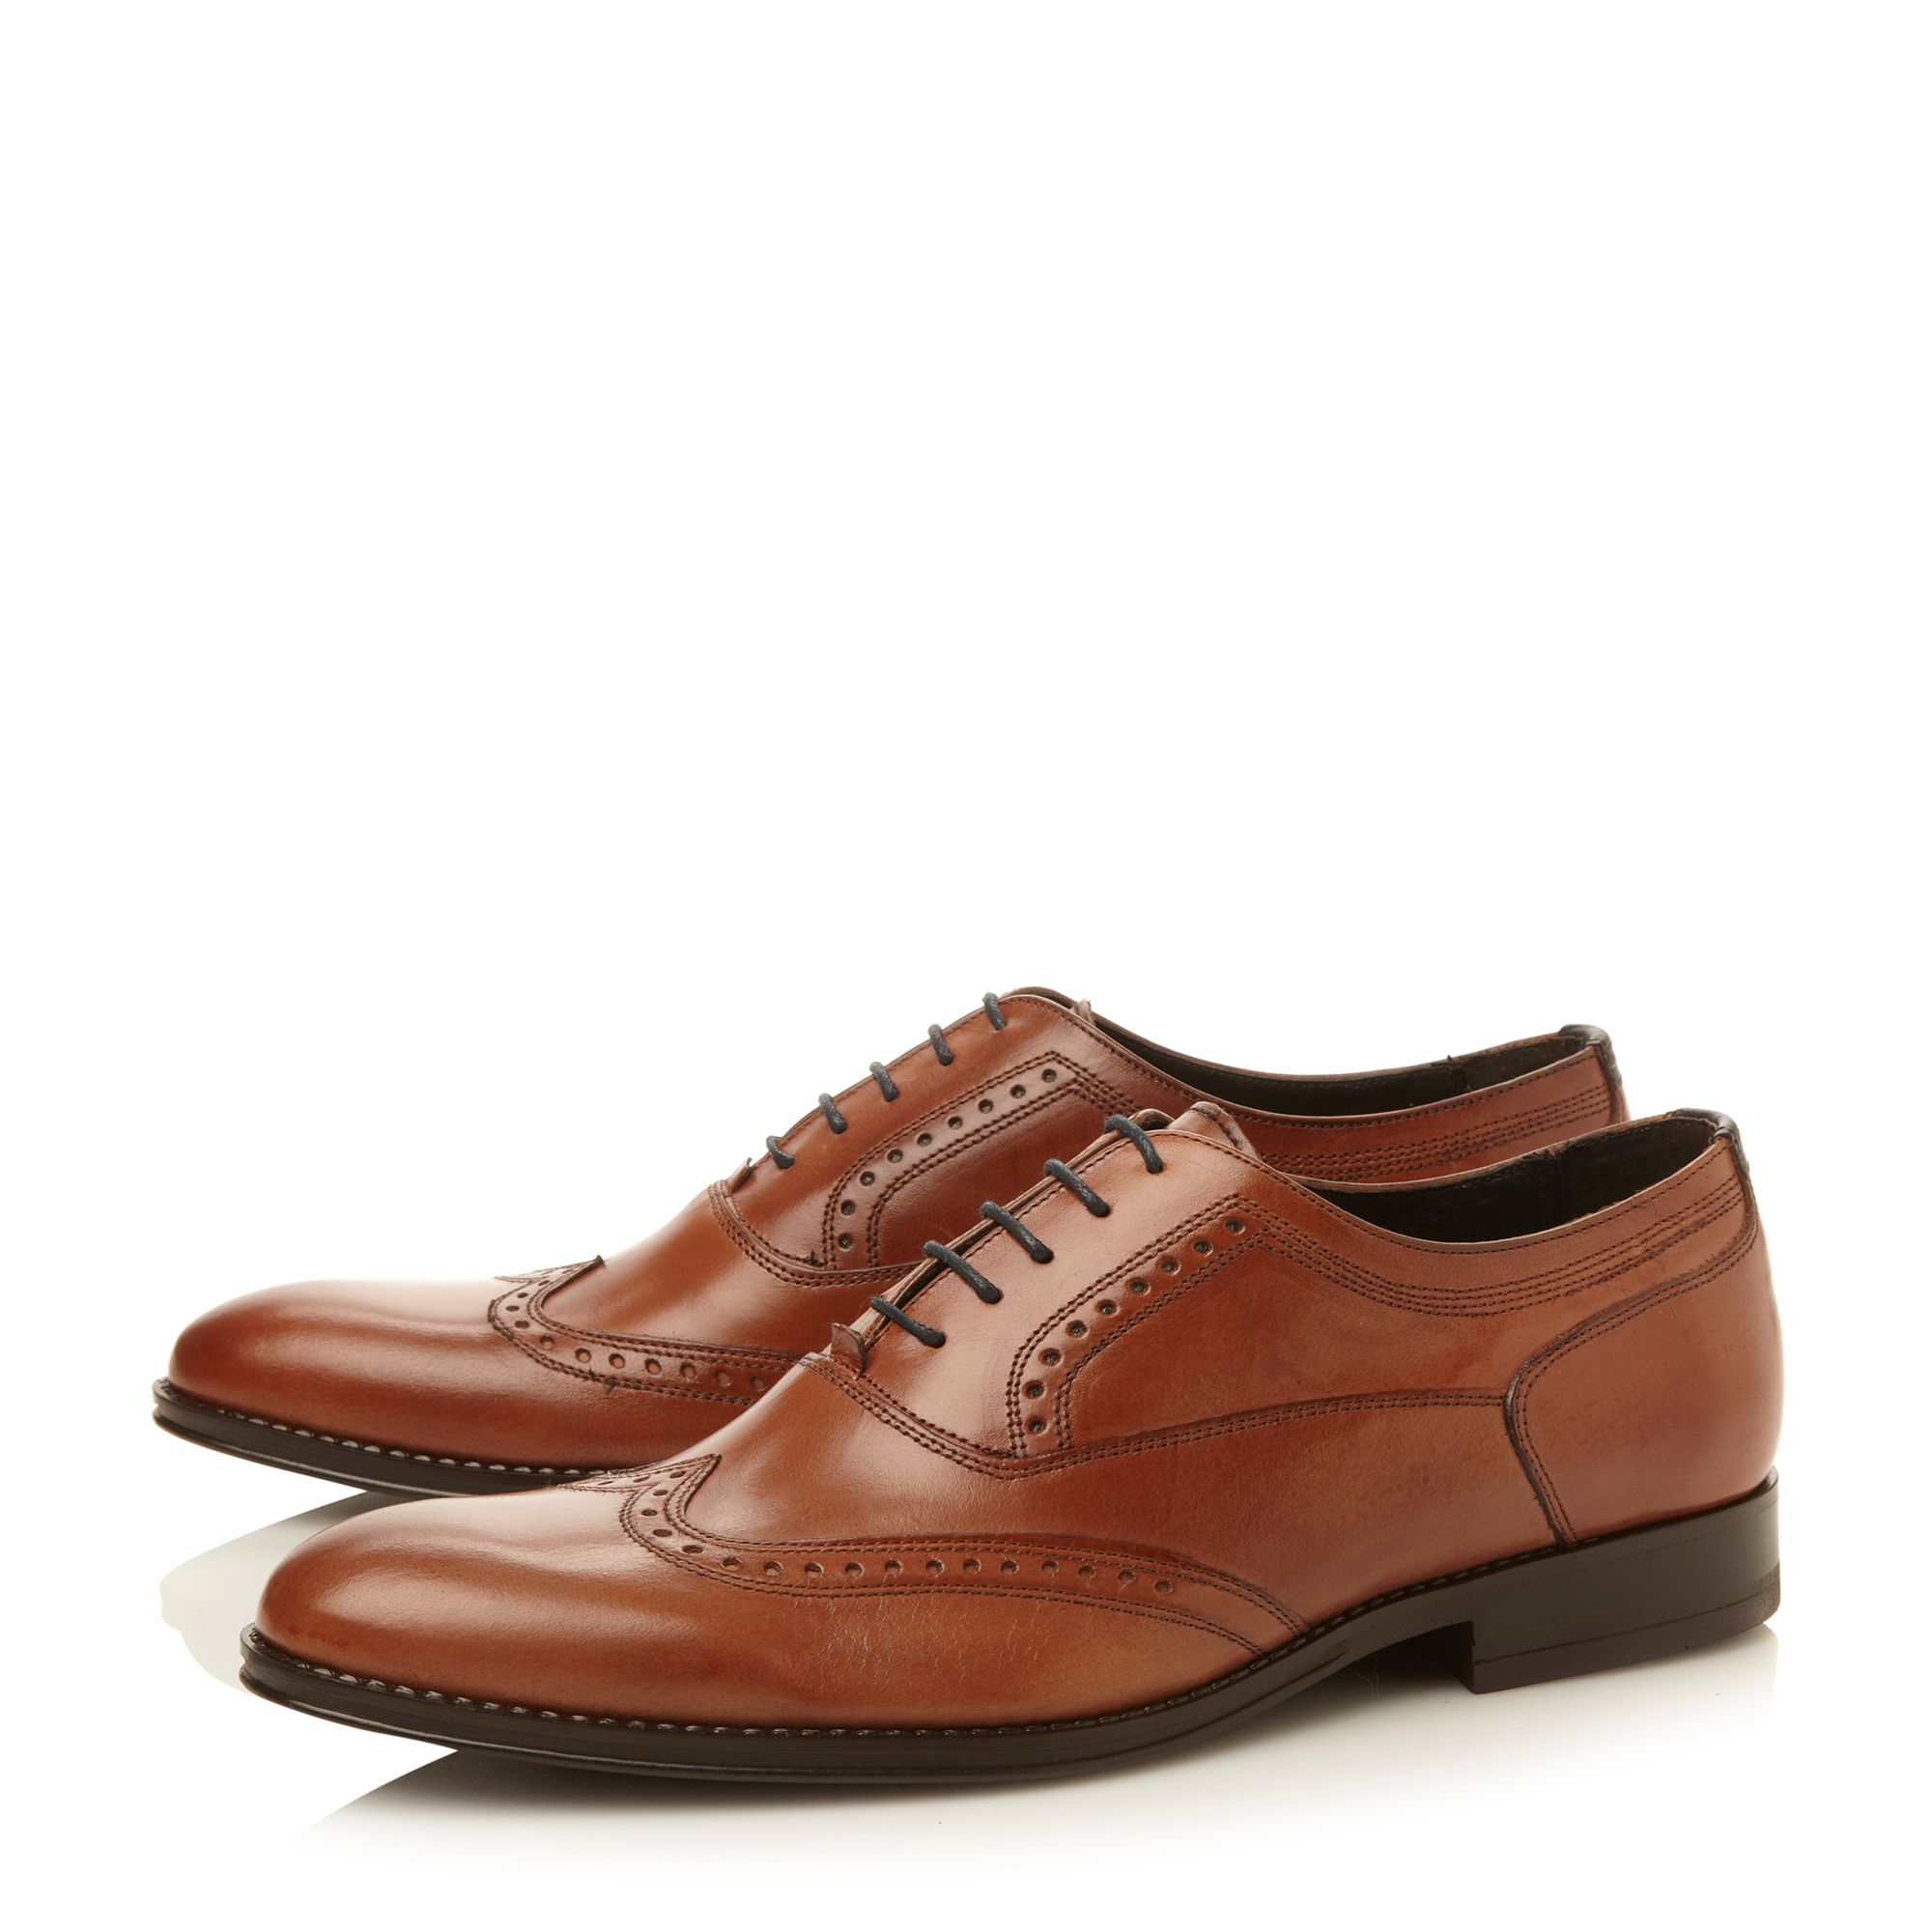 Rhodesy wingtip almond toe lace-up shoes